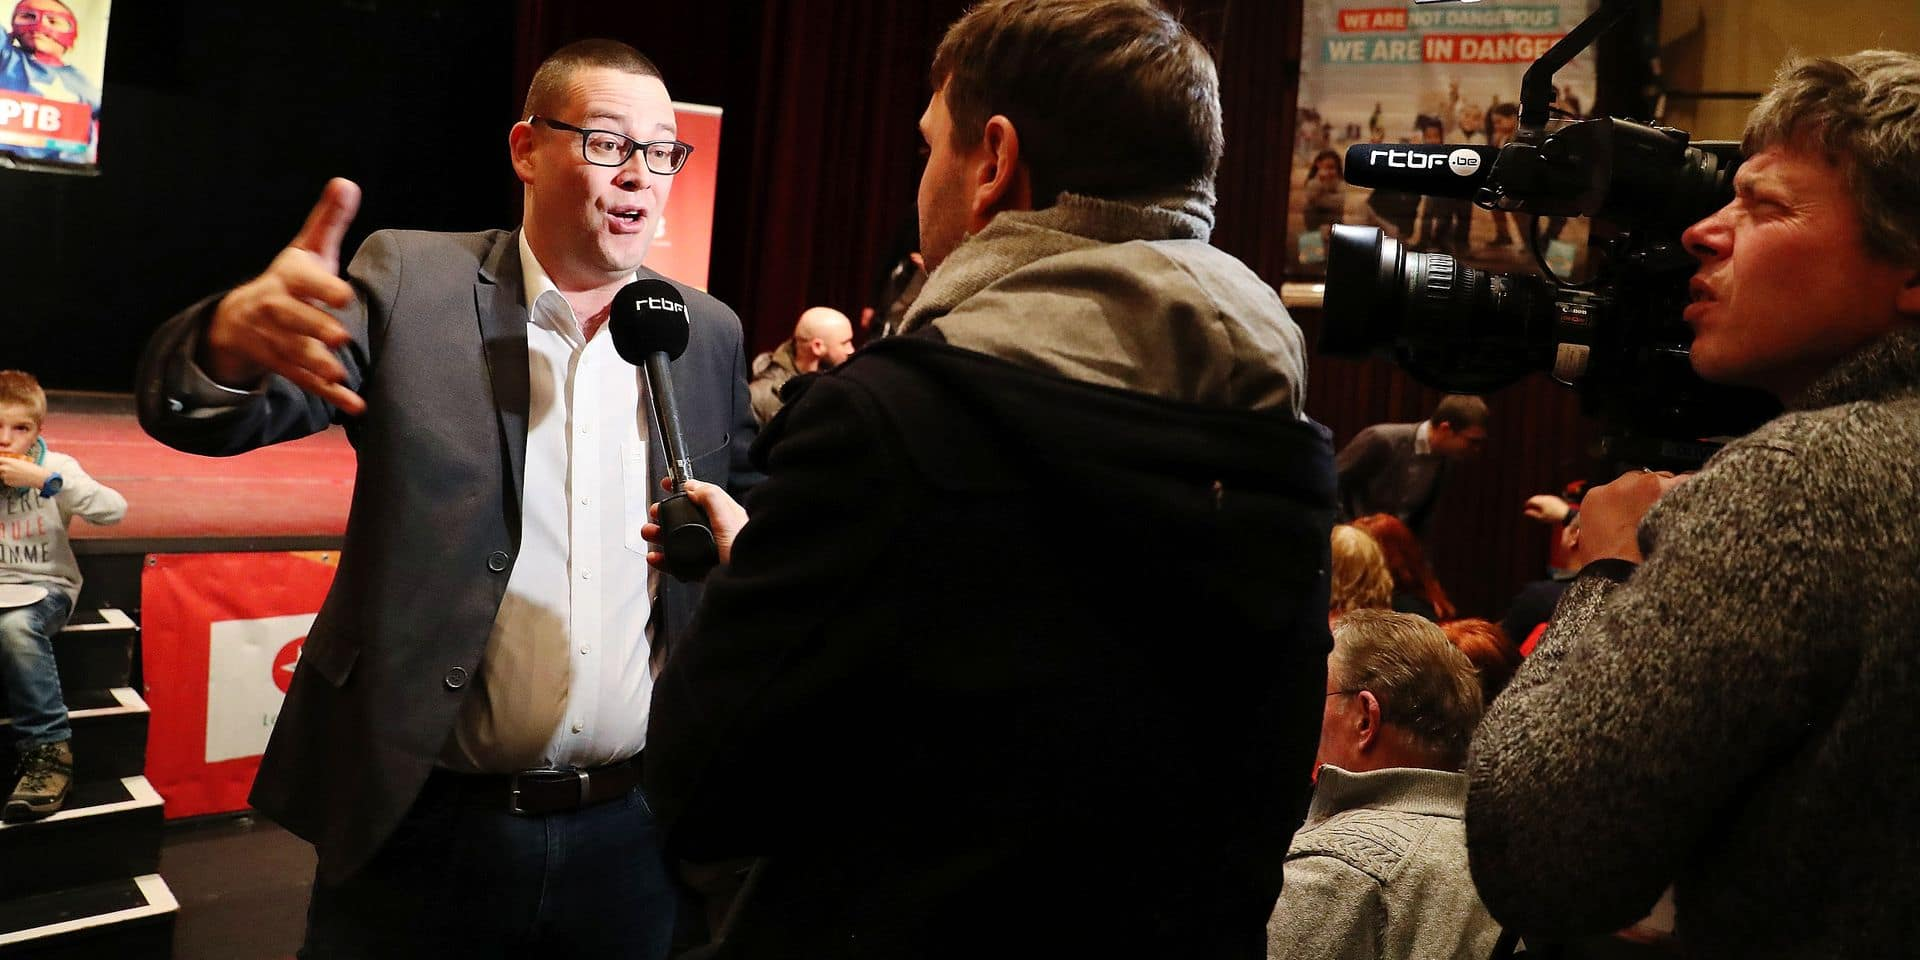 PTB-GO !'s Raoul Hedebouw pictured at the new year's reception of Belgian far-left party PTB - PVDA, in Liege, Friday 25 January 2019. BELGA PHOTO BRUNO FAHY